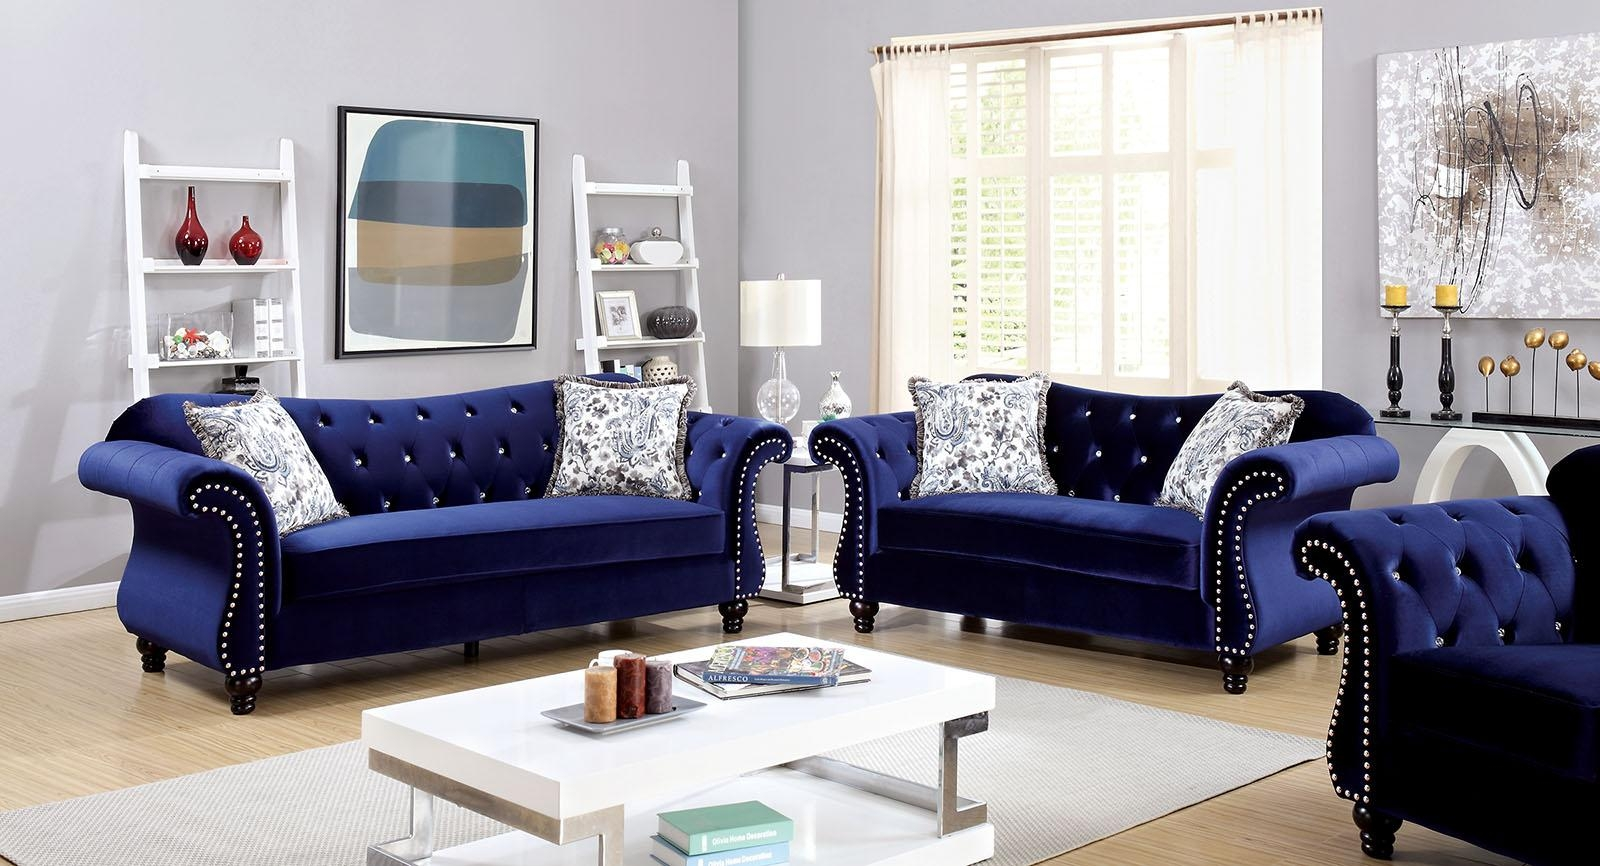 Jolanda Collection Blue Flannelette Button Tufted & Nailhead Trim With Regard To Blue Tufted Sofas (Image 11 of 22)